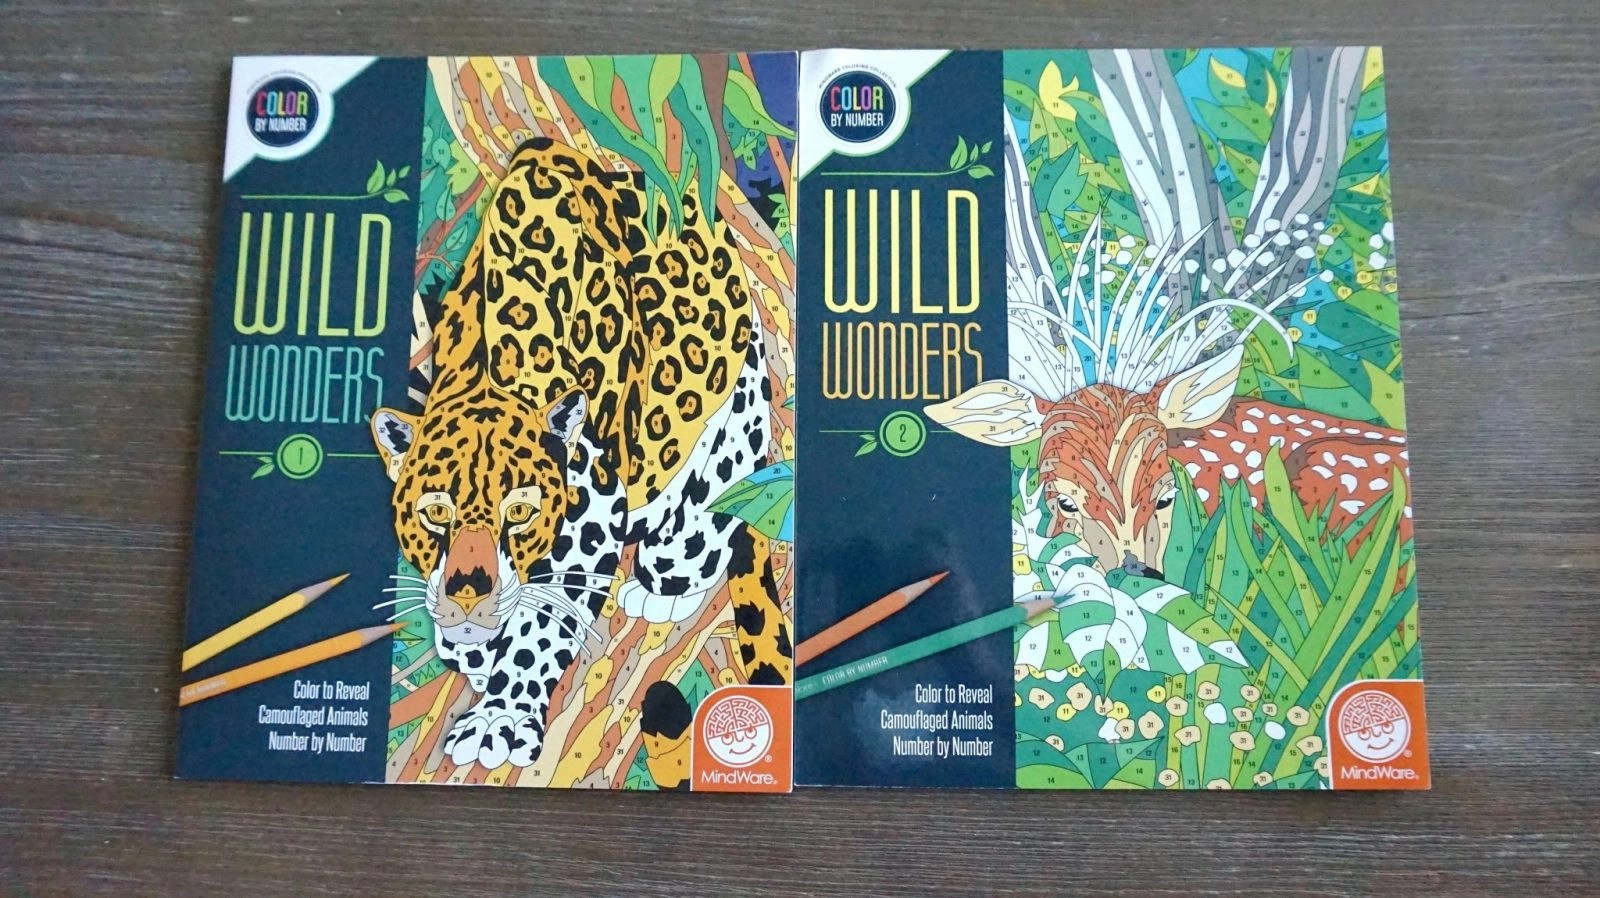 A few adult coloring books from Wild Wonders